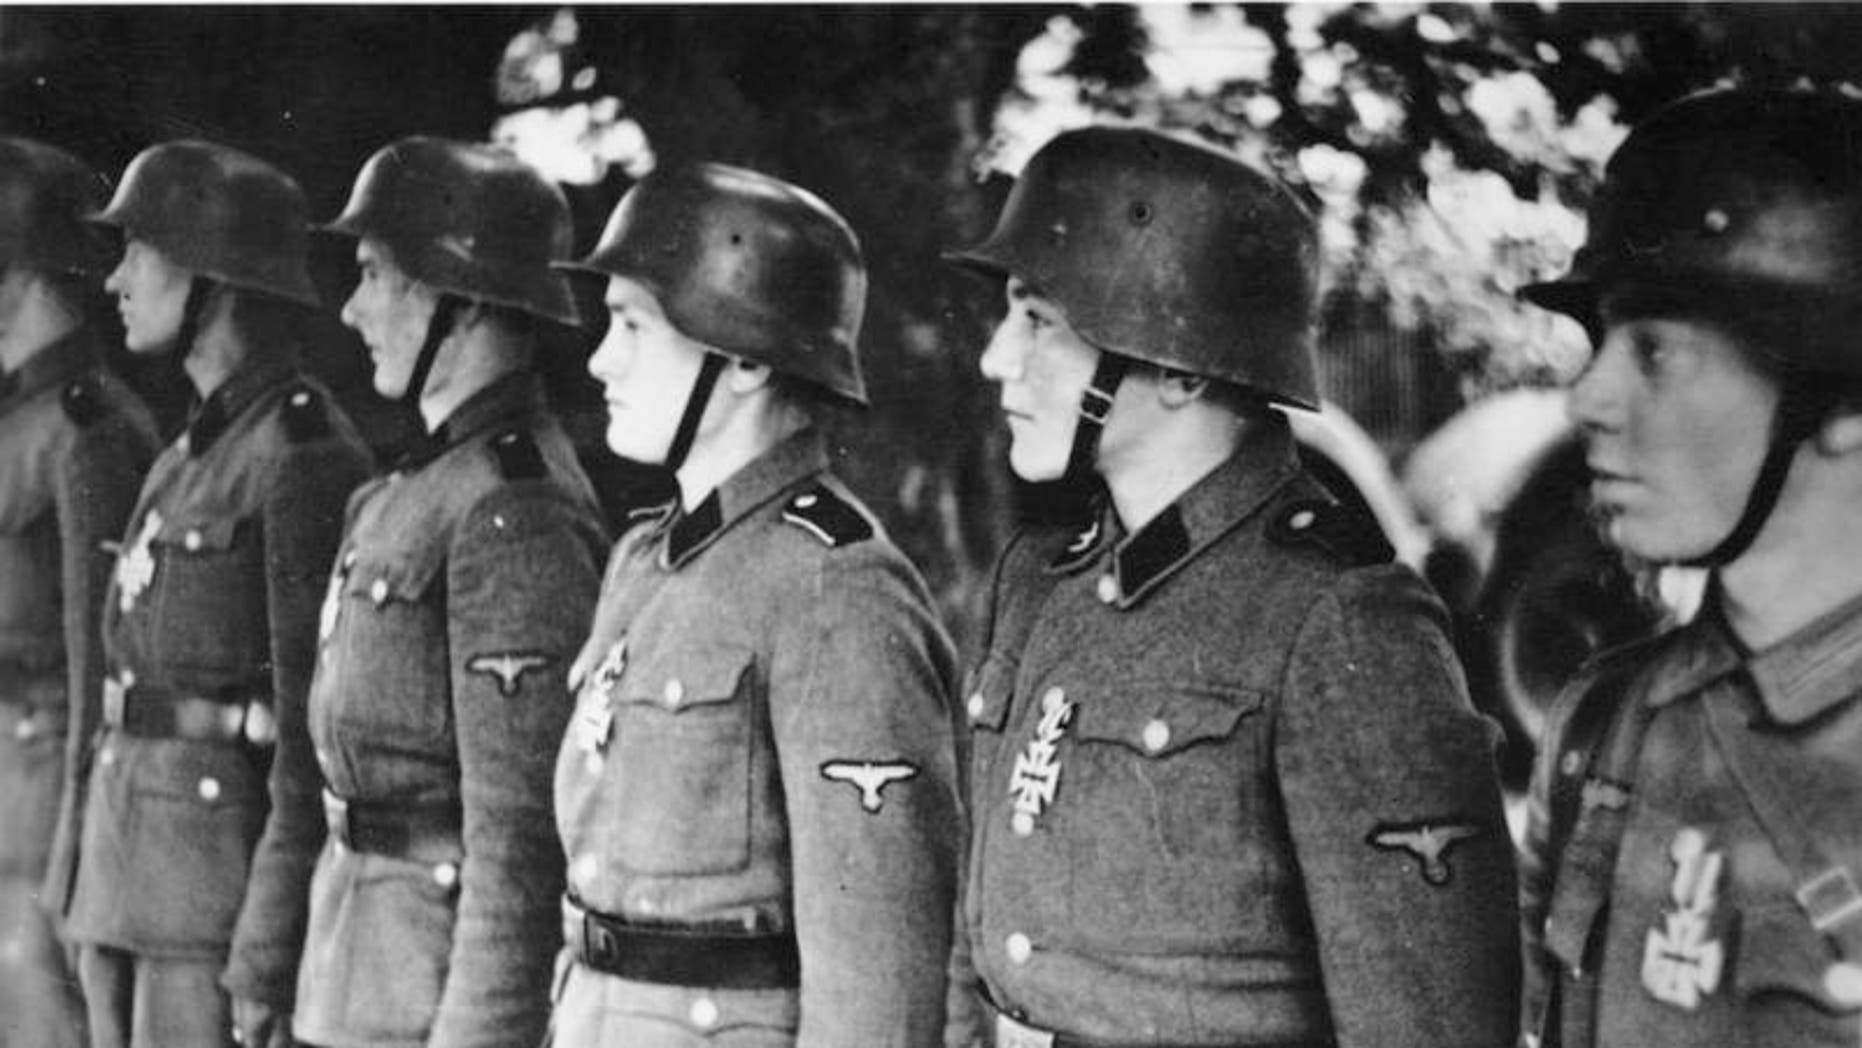 Members of the Waffen SS on parade.